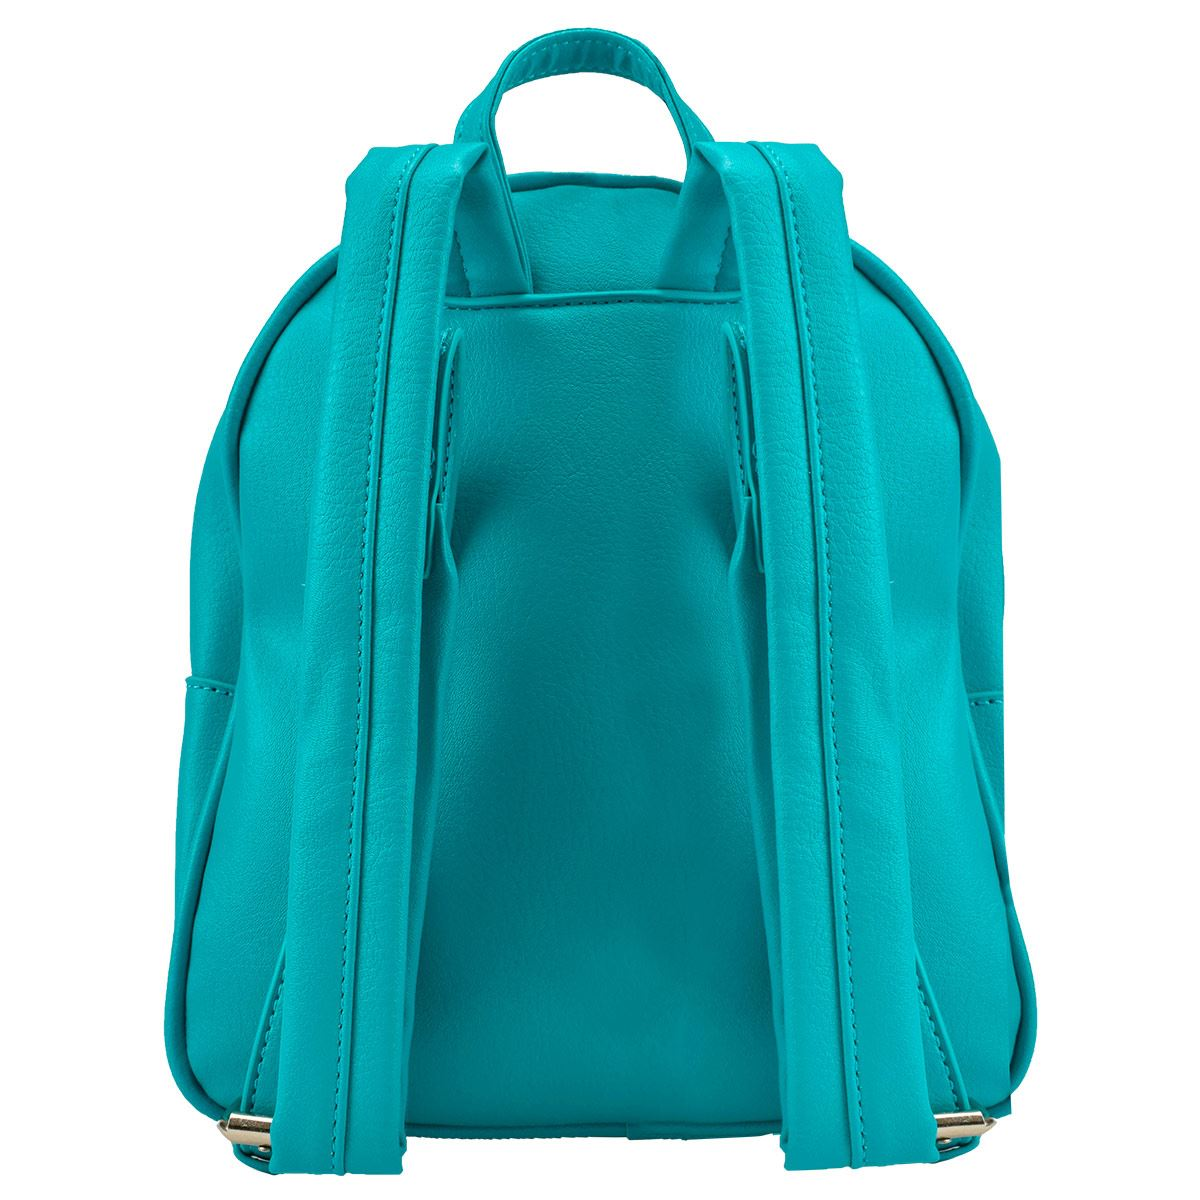 Bolso back pack Perry Ellis turquesa   a01590